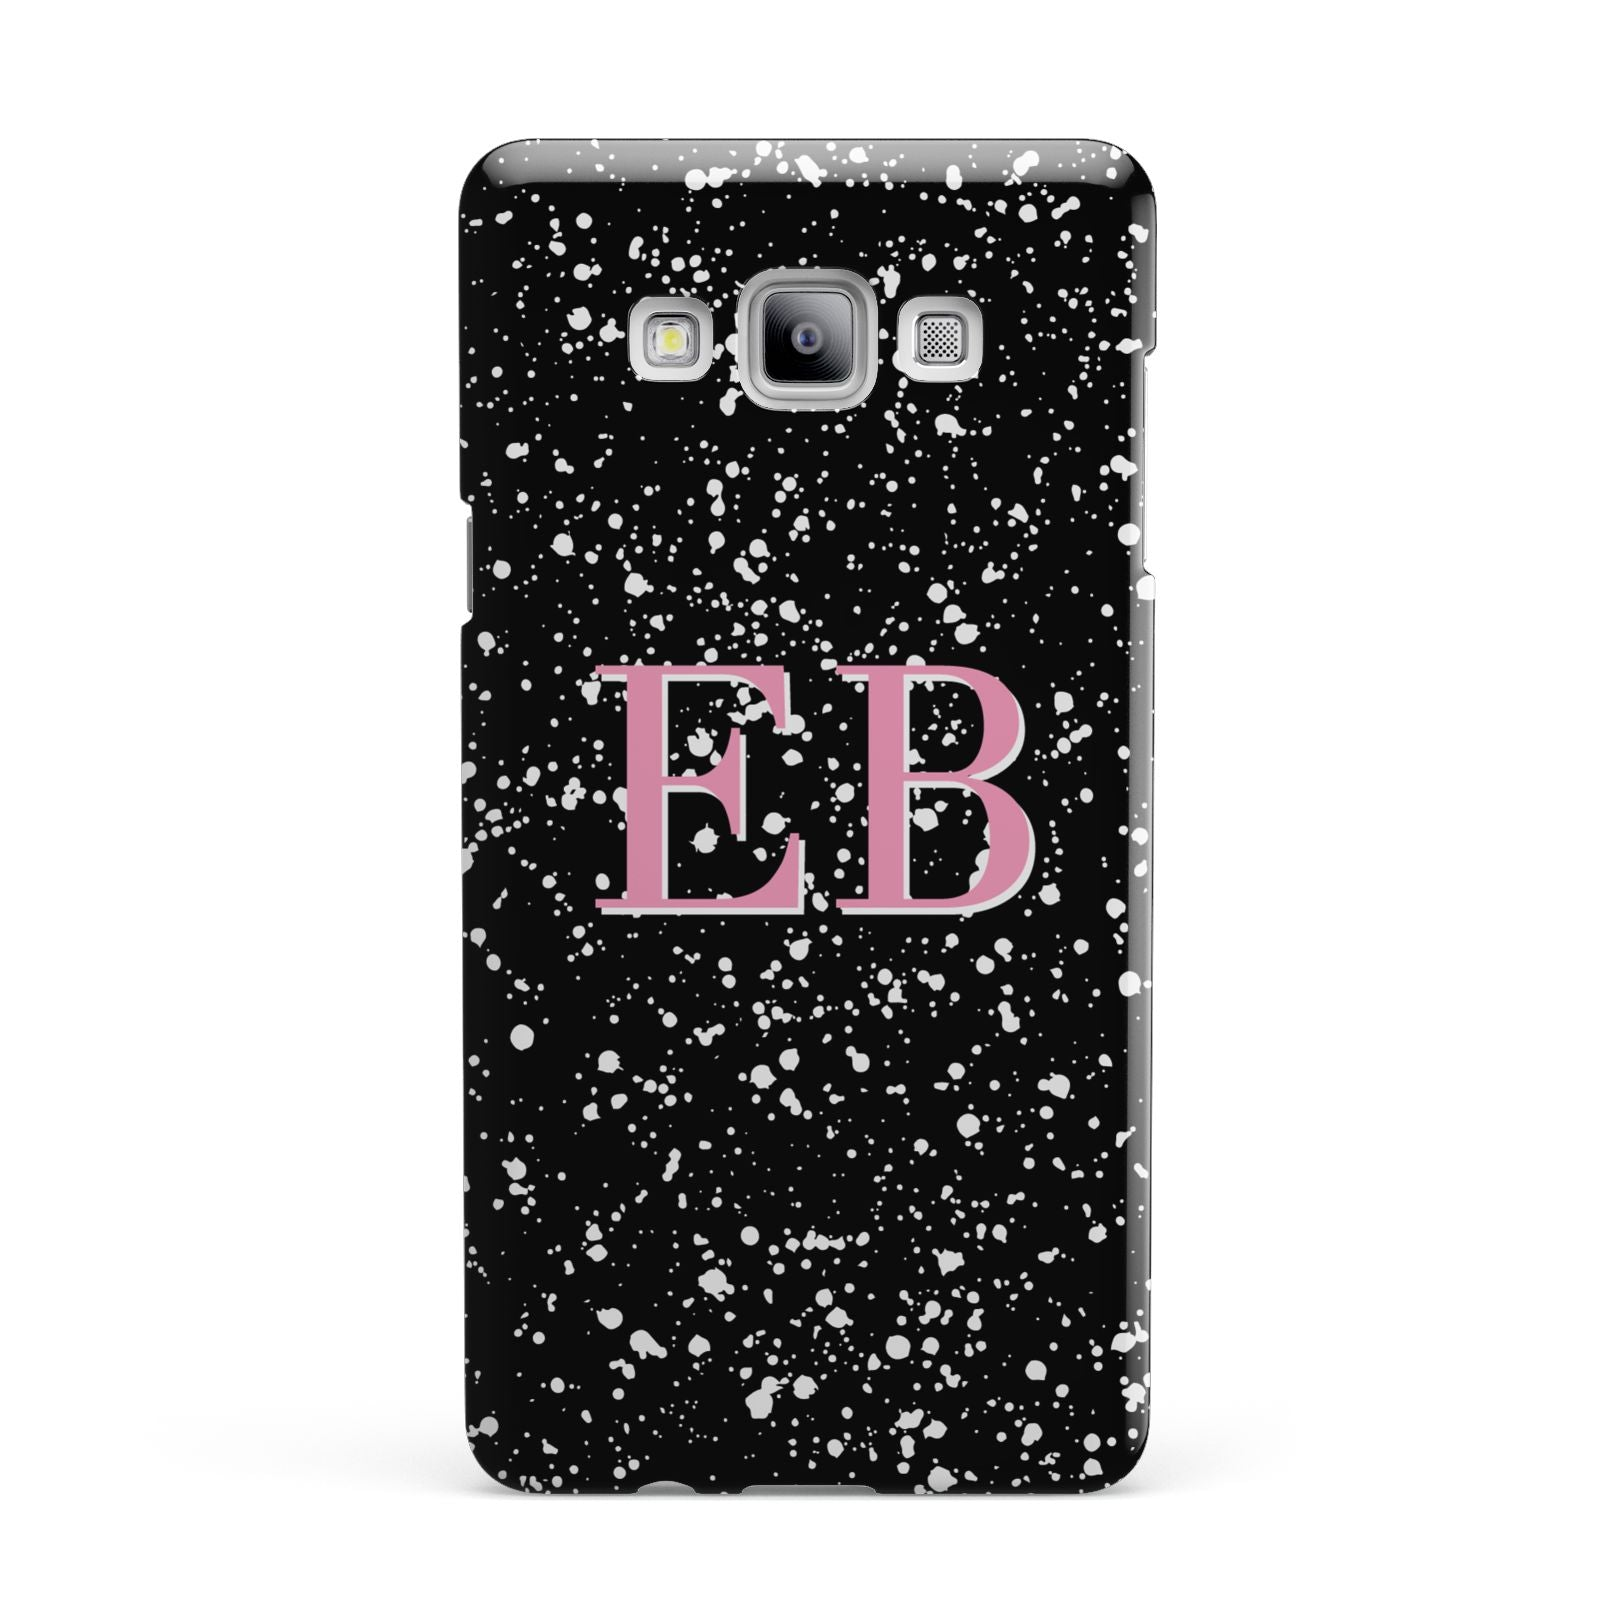 Personalised Black Ink Splat Initials Samsung Galaxy A7 2015 Case